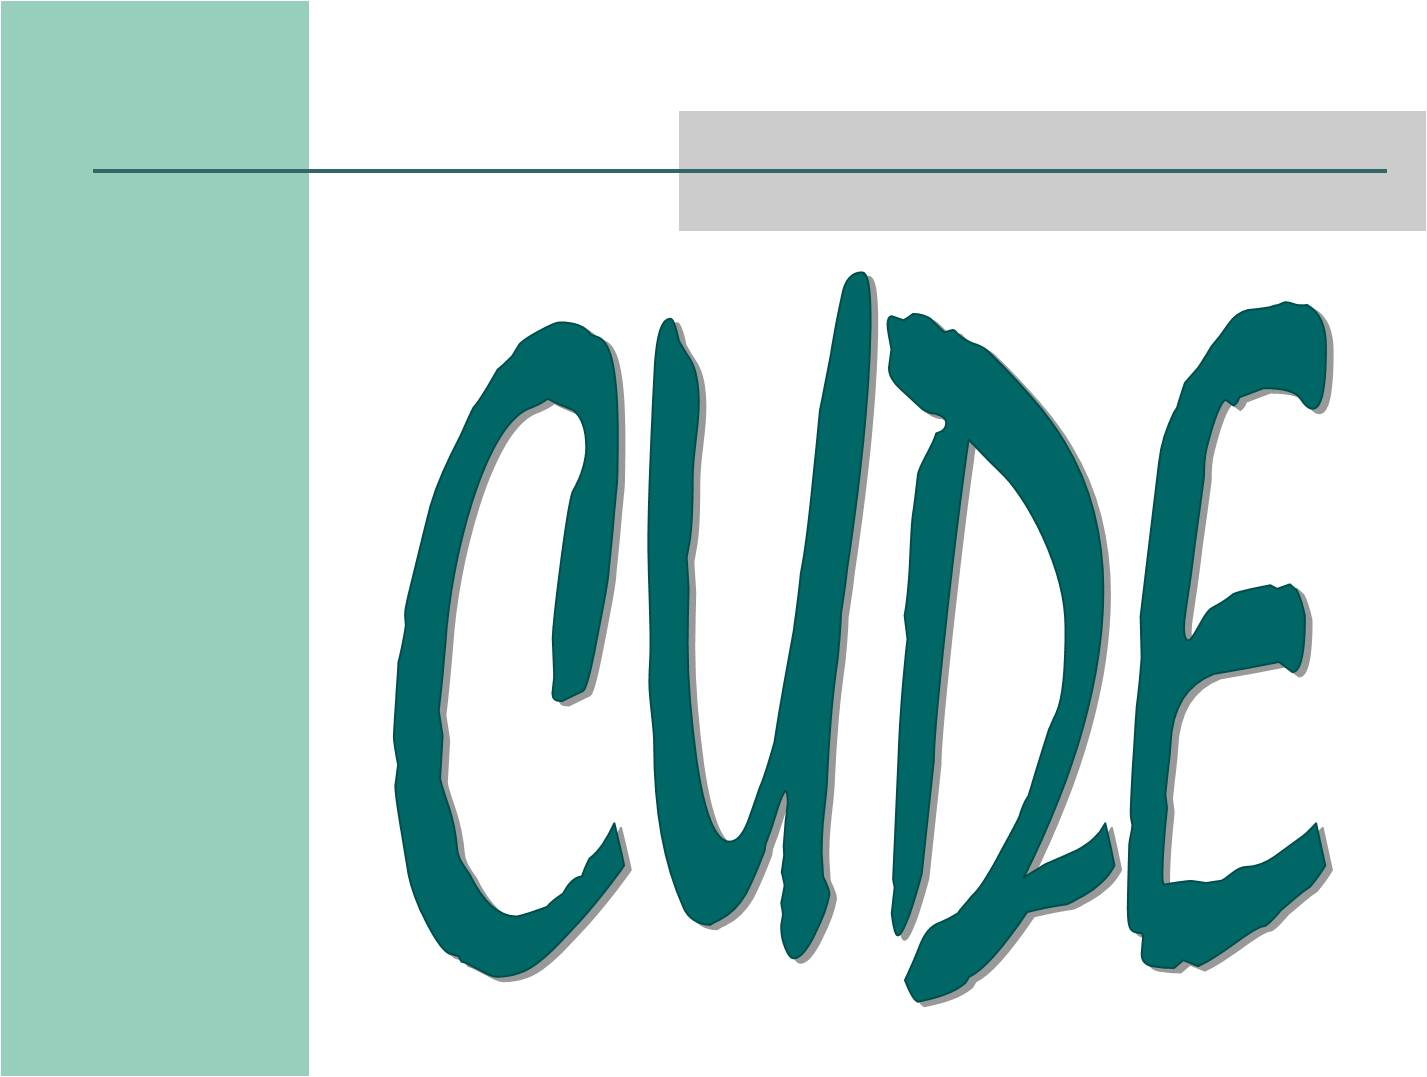 Accepting Nominations for CUDE Awards